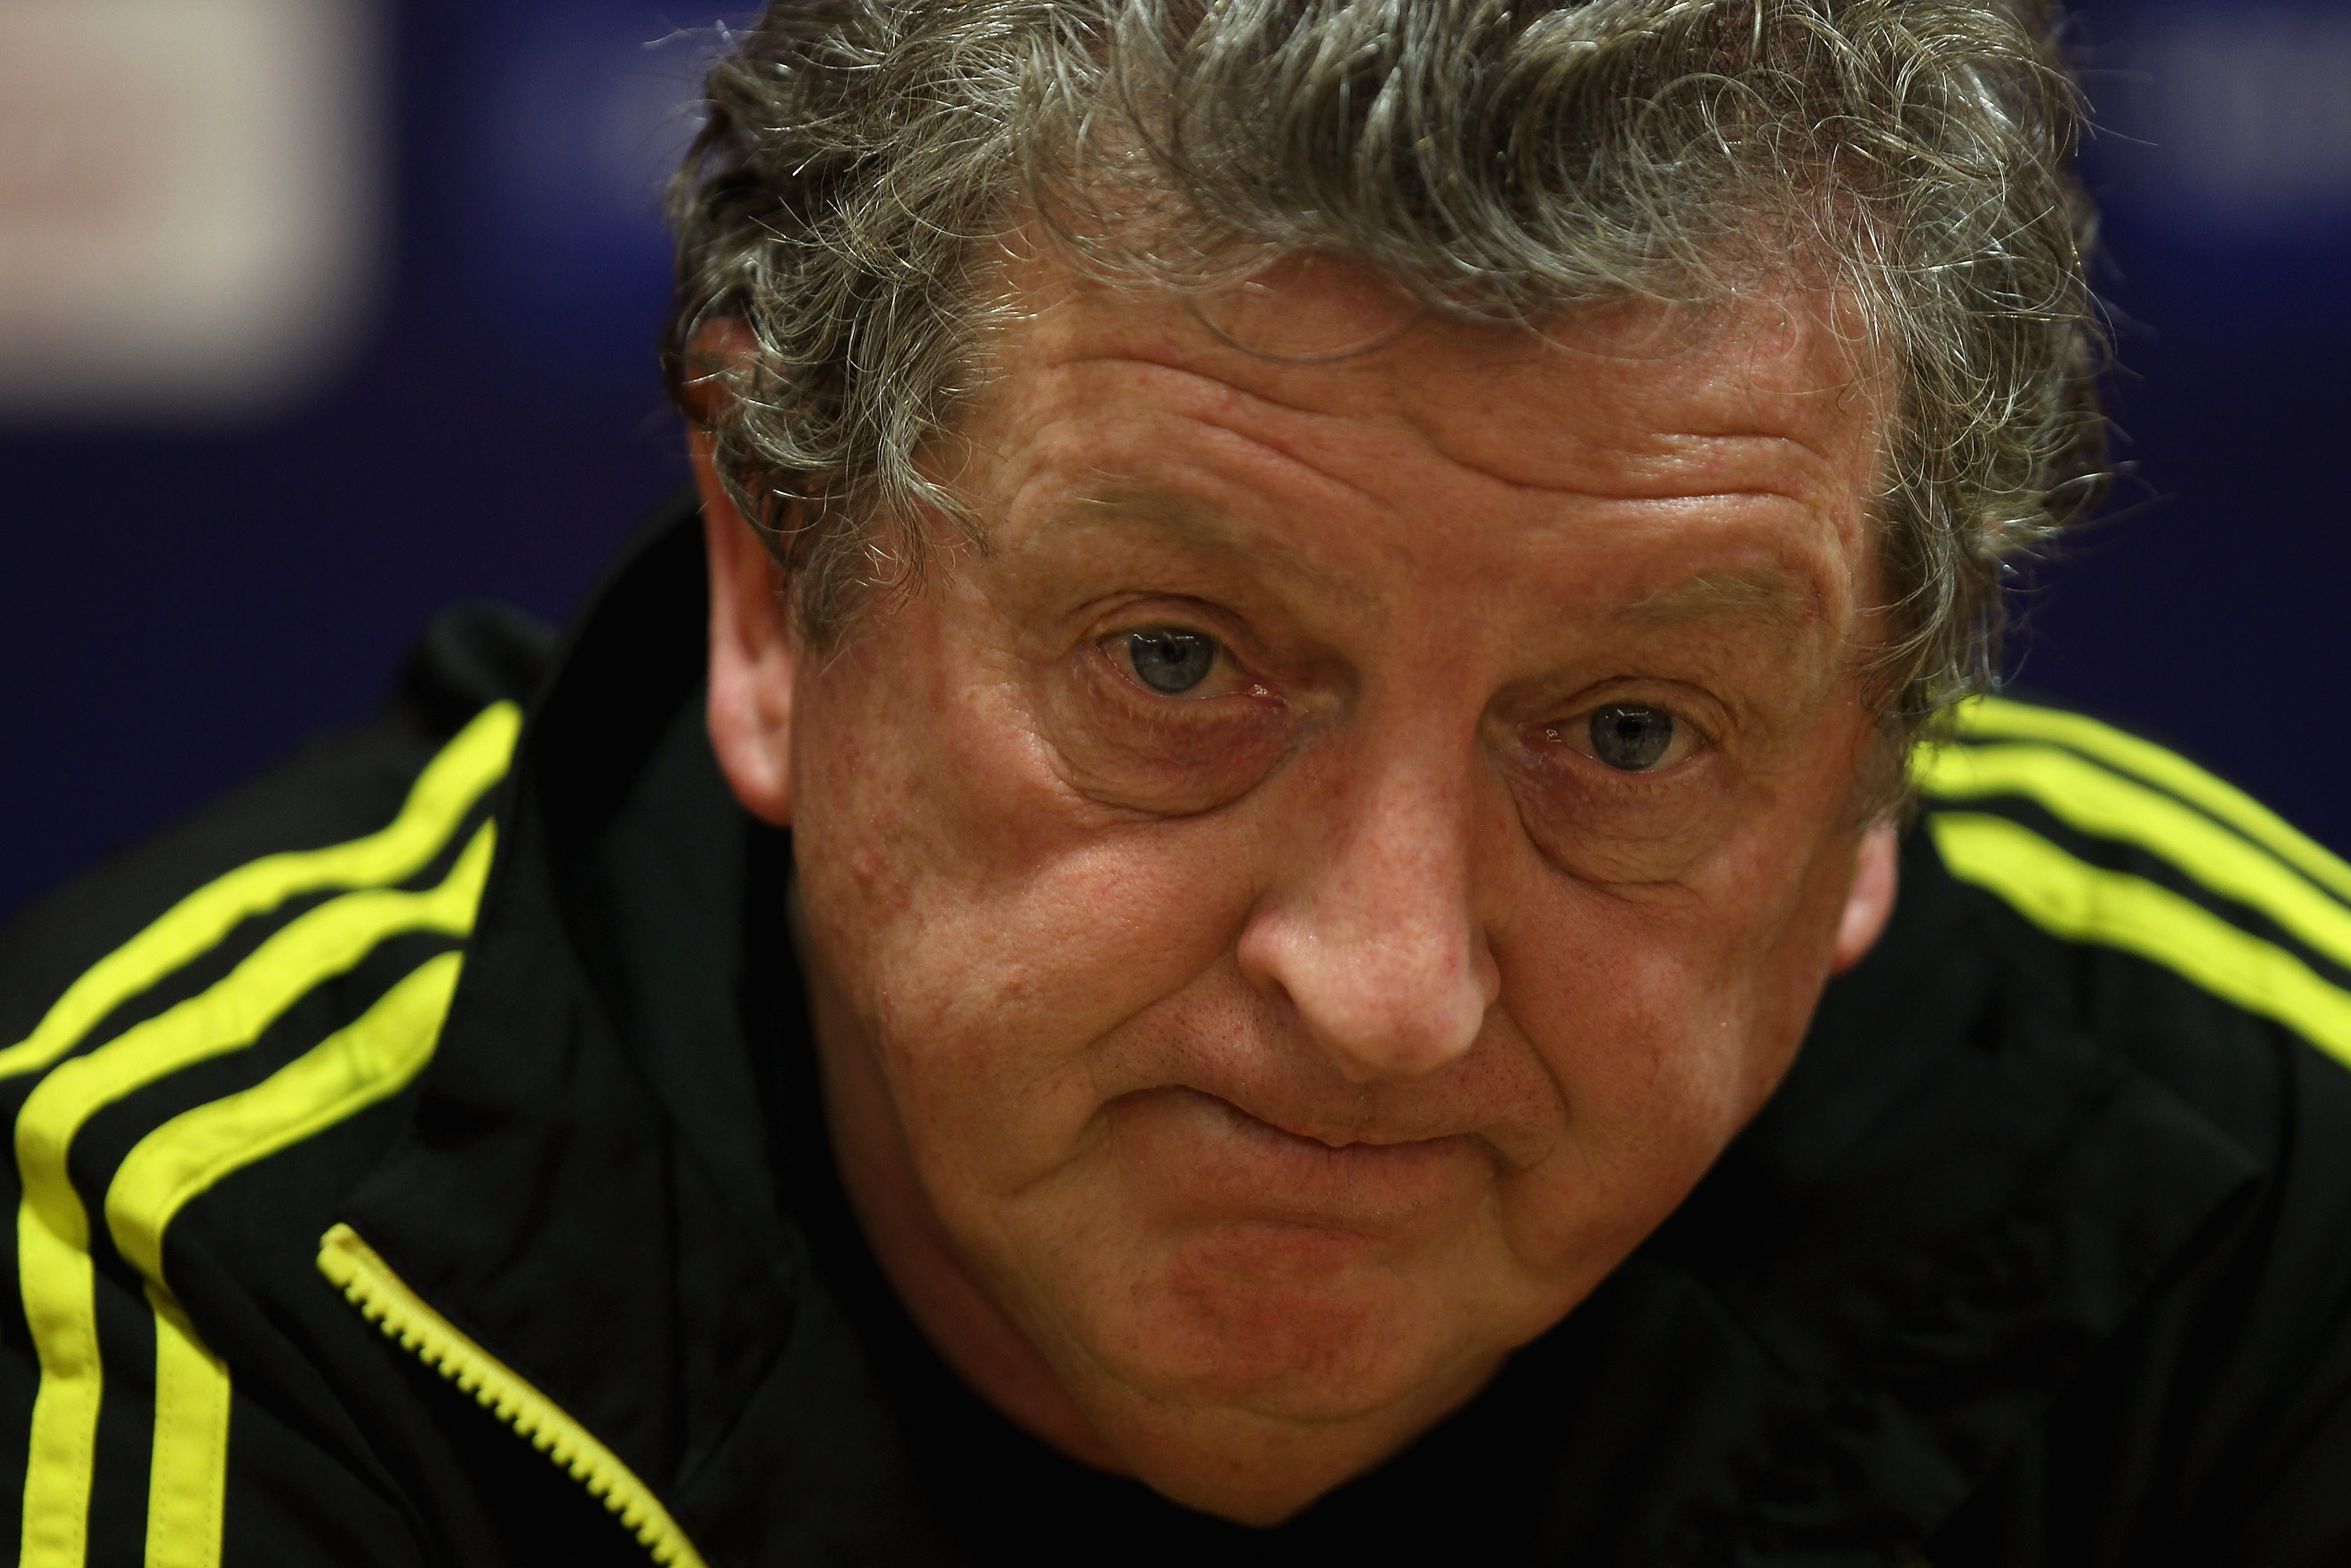 LIVERPOOL, ENGLAND - DECEMBER 14:  Liverpool manager Roy Hodgson thinks before answering a question during the press conference ahead of their UEFA Europa League Group K match against Utrecht at Anfield on December 14, 2010 in Liverpool, England.  (Photo